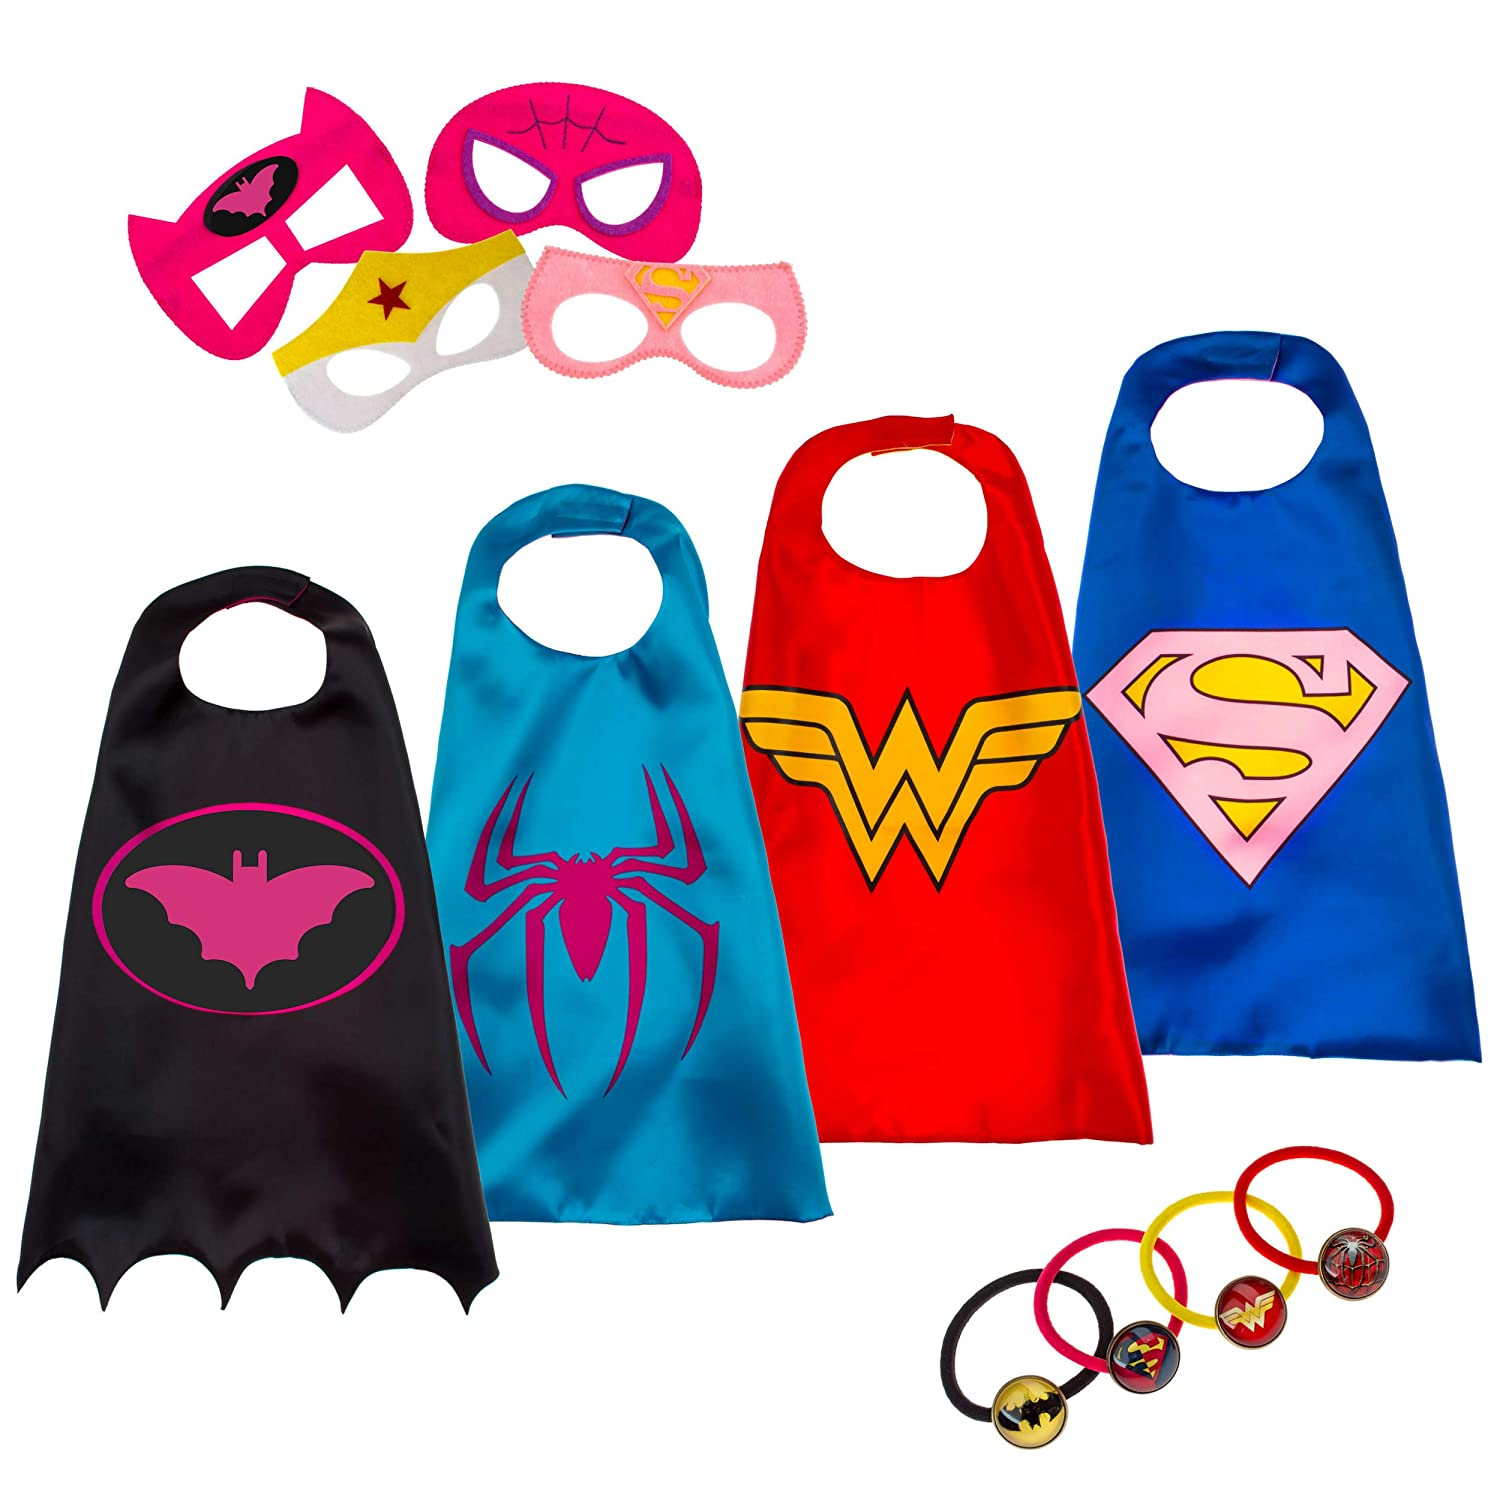 Dropplex 4 Superhero Capes for Kids - Super Hero Toys & Costumes - Birthday Party Supplies